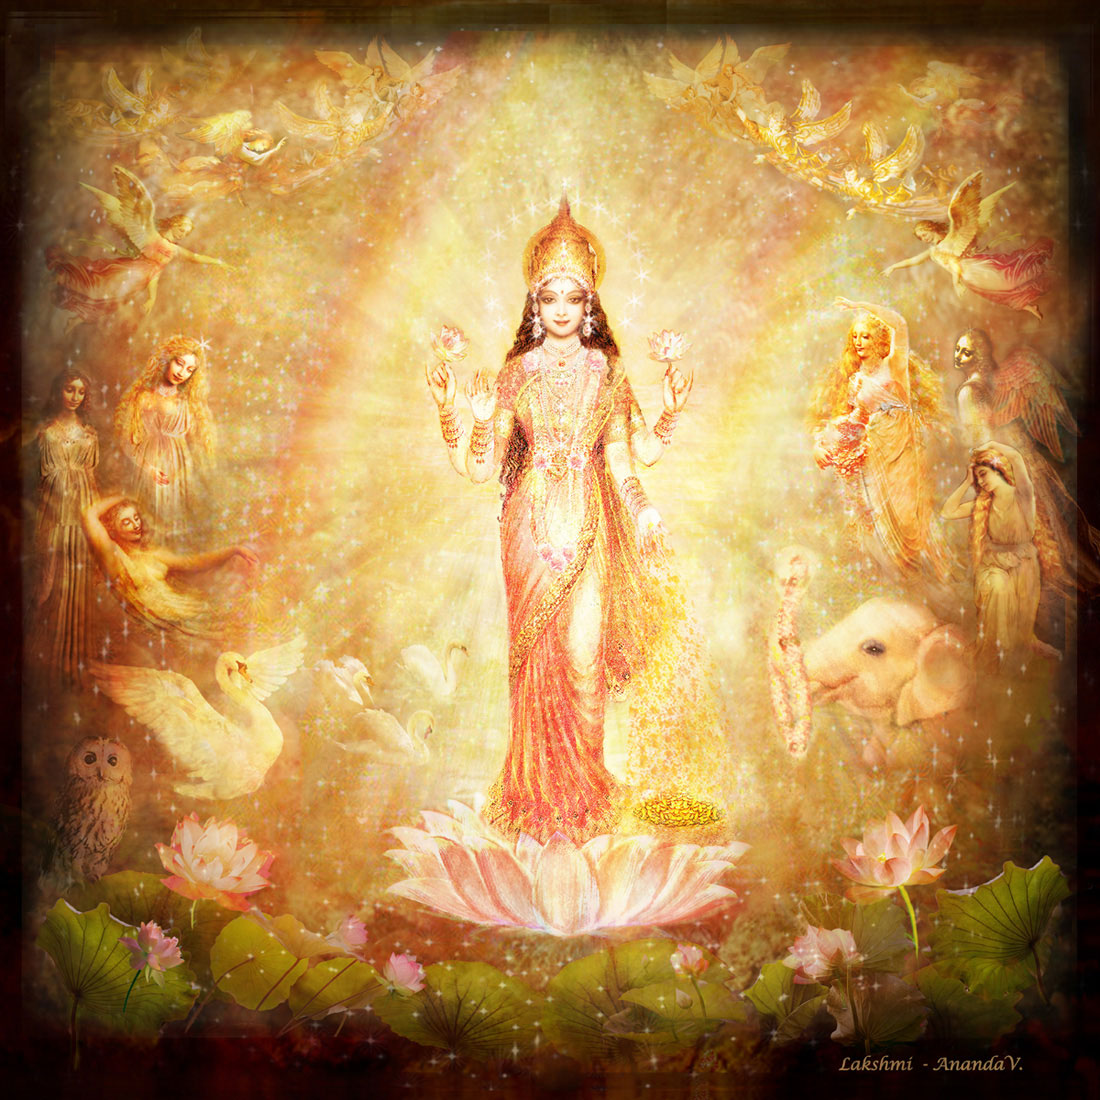 Lakshmi with Angels and Muses